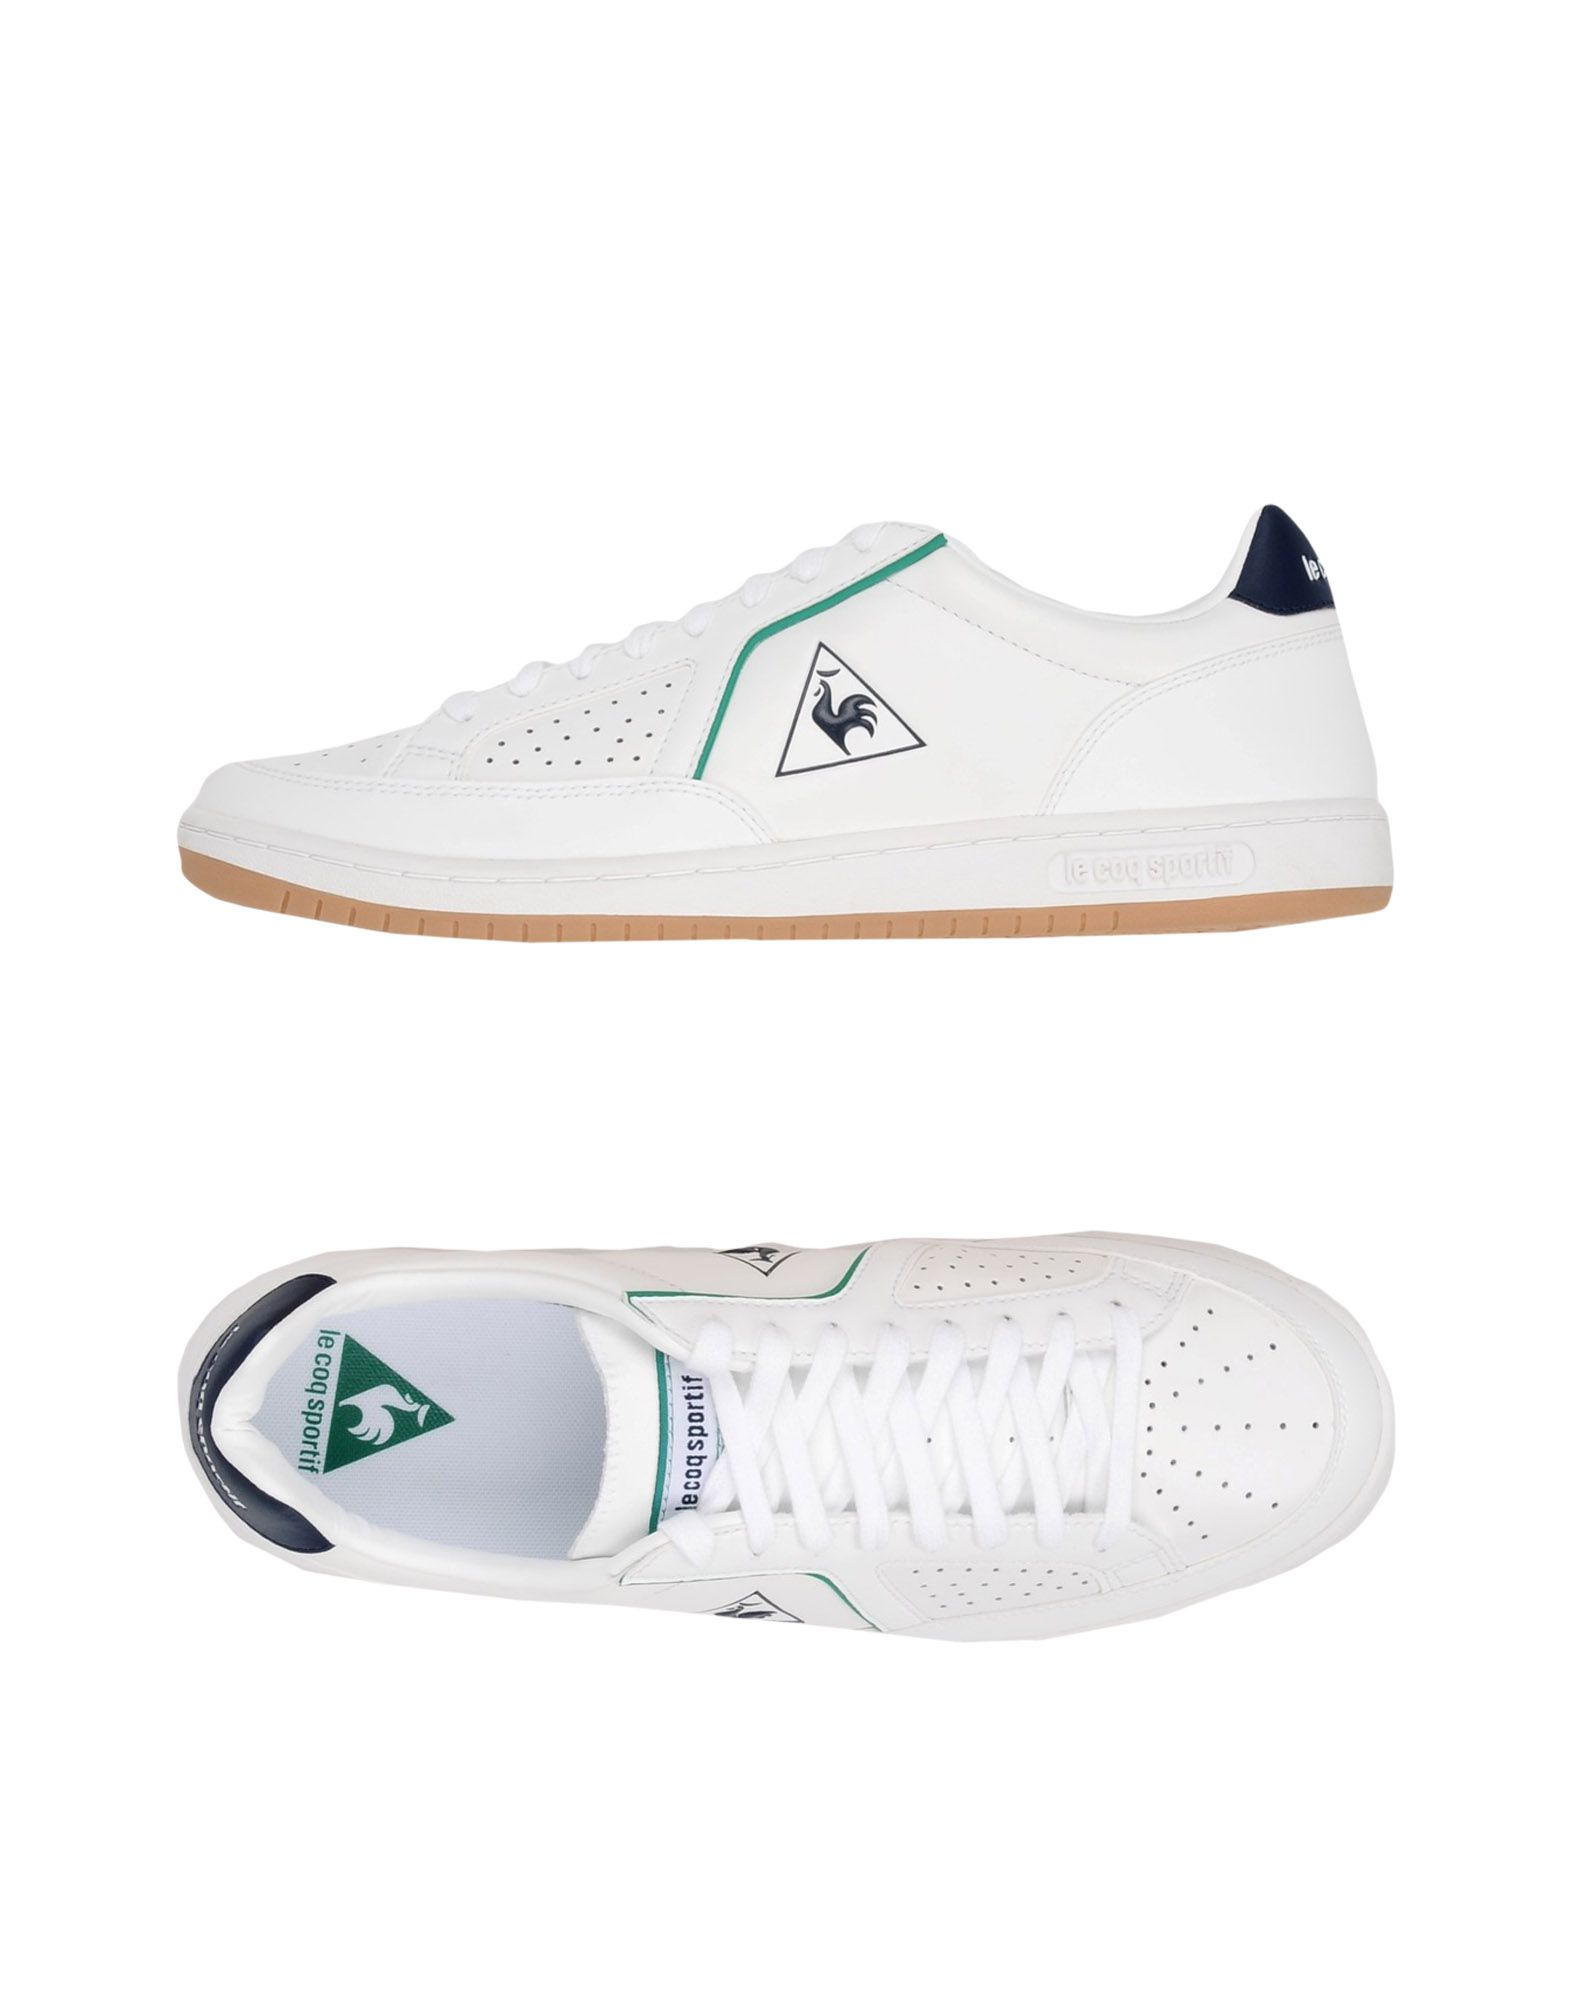 LE COQ SPORTIF Низкие кеды и кроссовки spring korean men flats shoes british fashion trend of small leather flat shoes tide dress shoes hot sale b1198